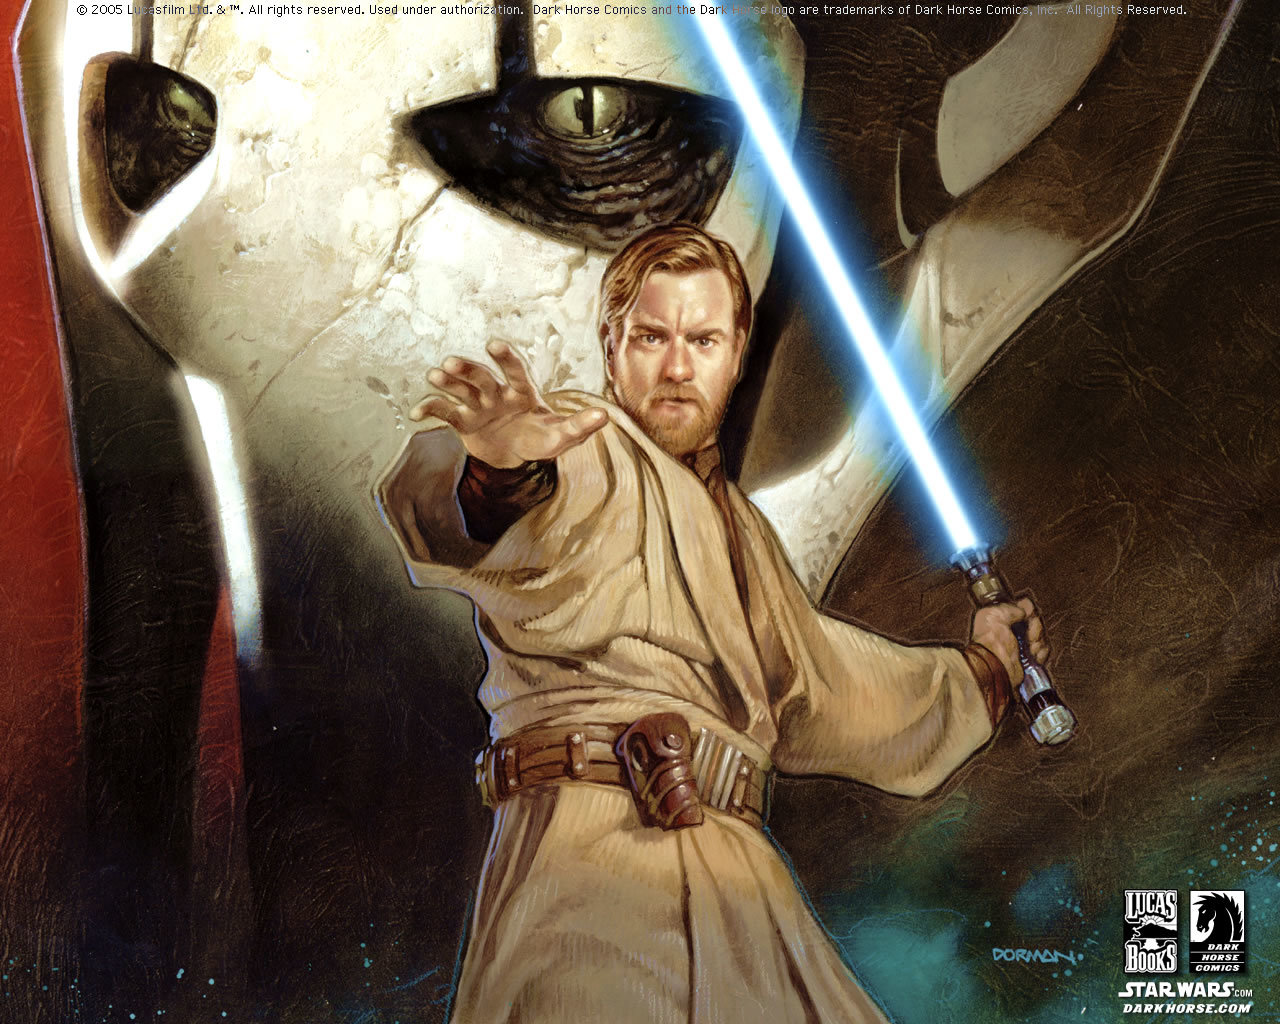 star wars ewan mcgregor HD Wallpaper